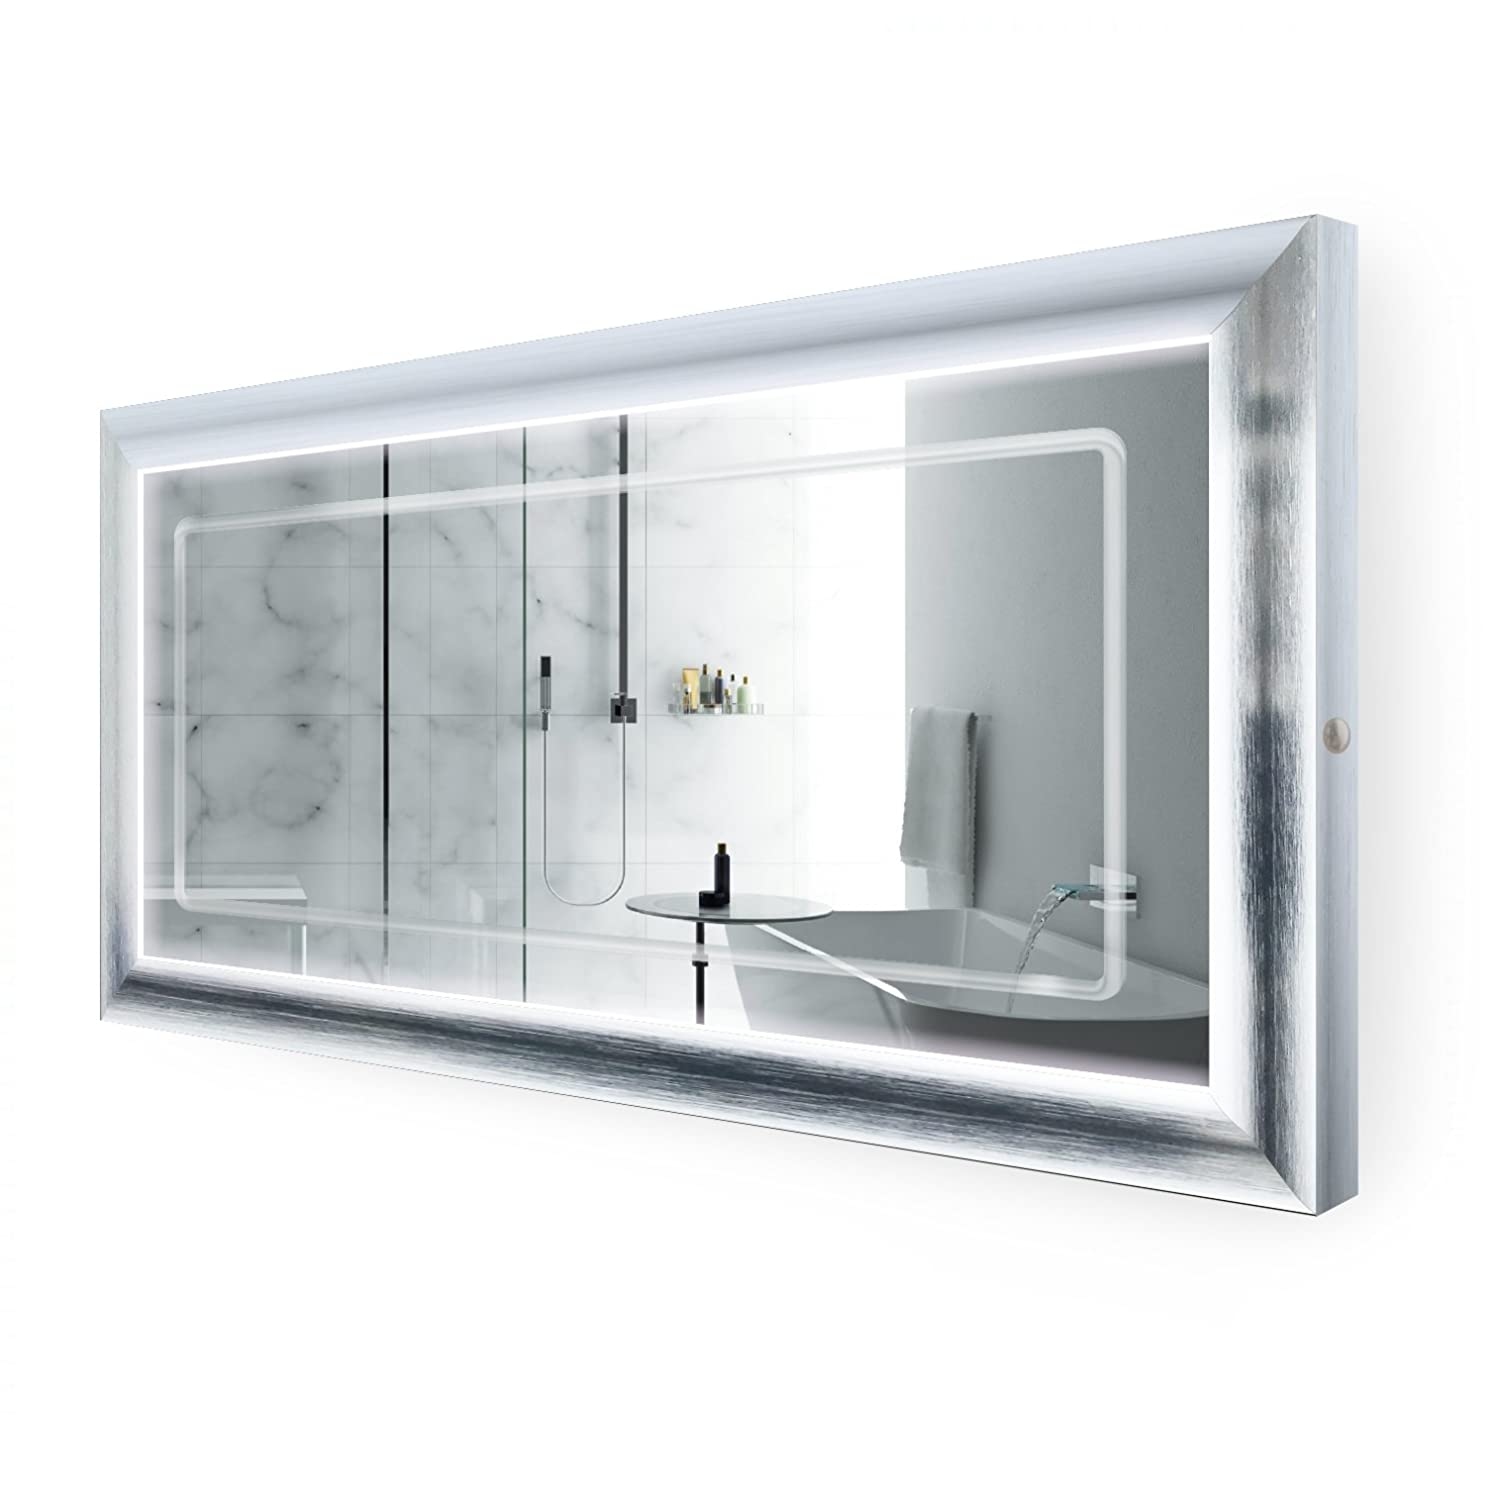 Krugg LED Lighted 60 Inch x 30 Inch Bathroom Satin Silver Framed Mirror w Defogger